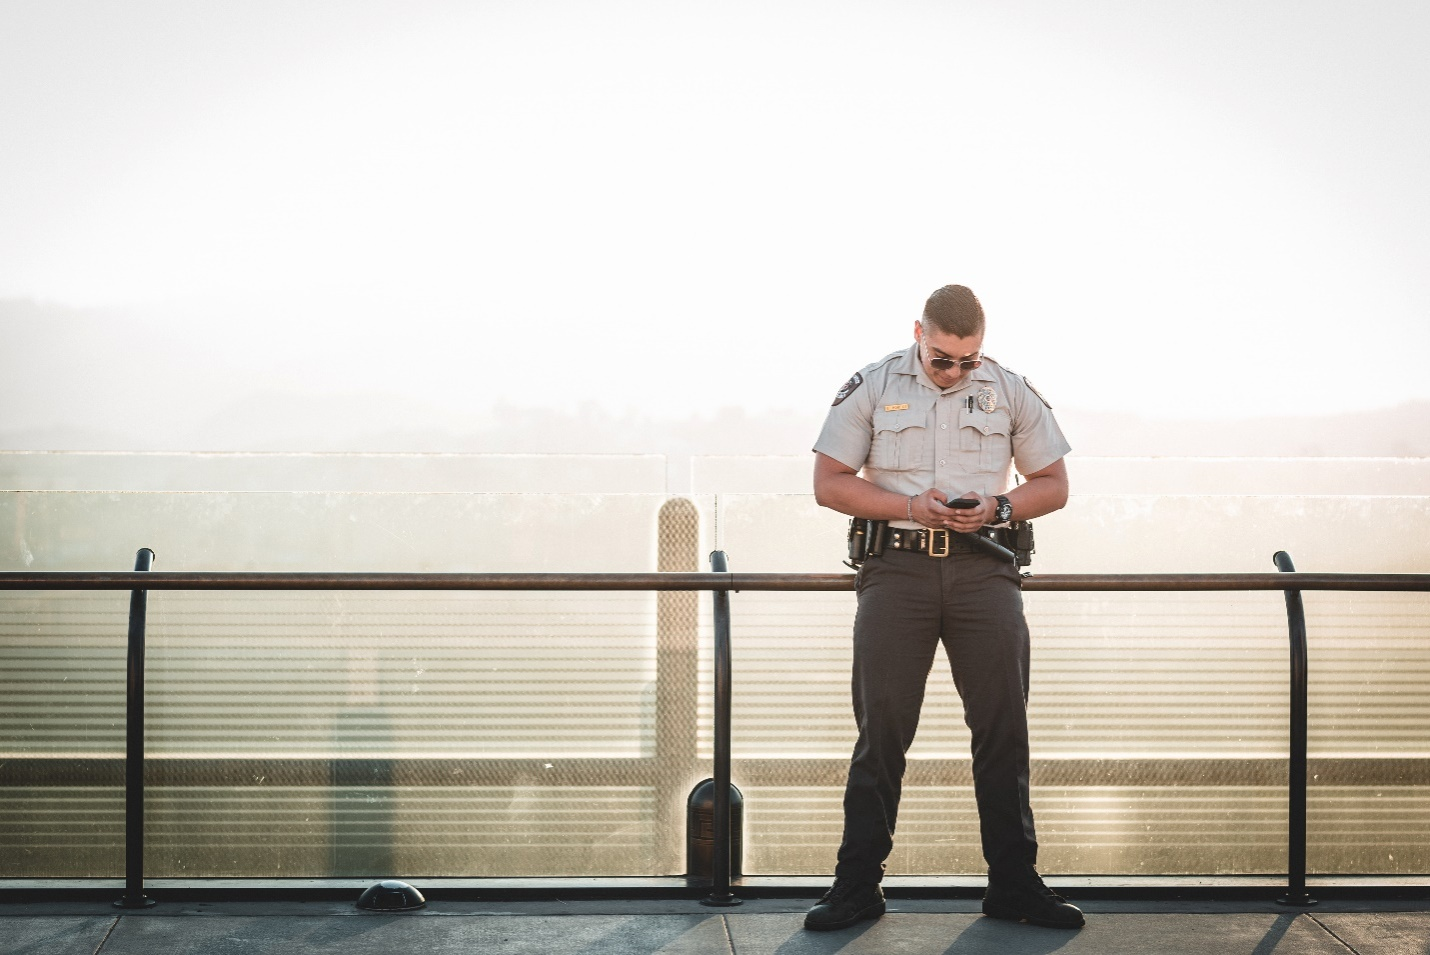 Security guard standing at their post